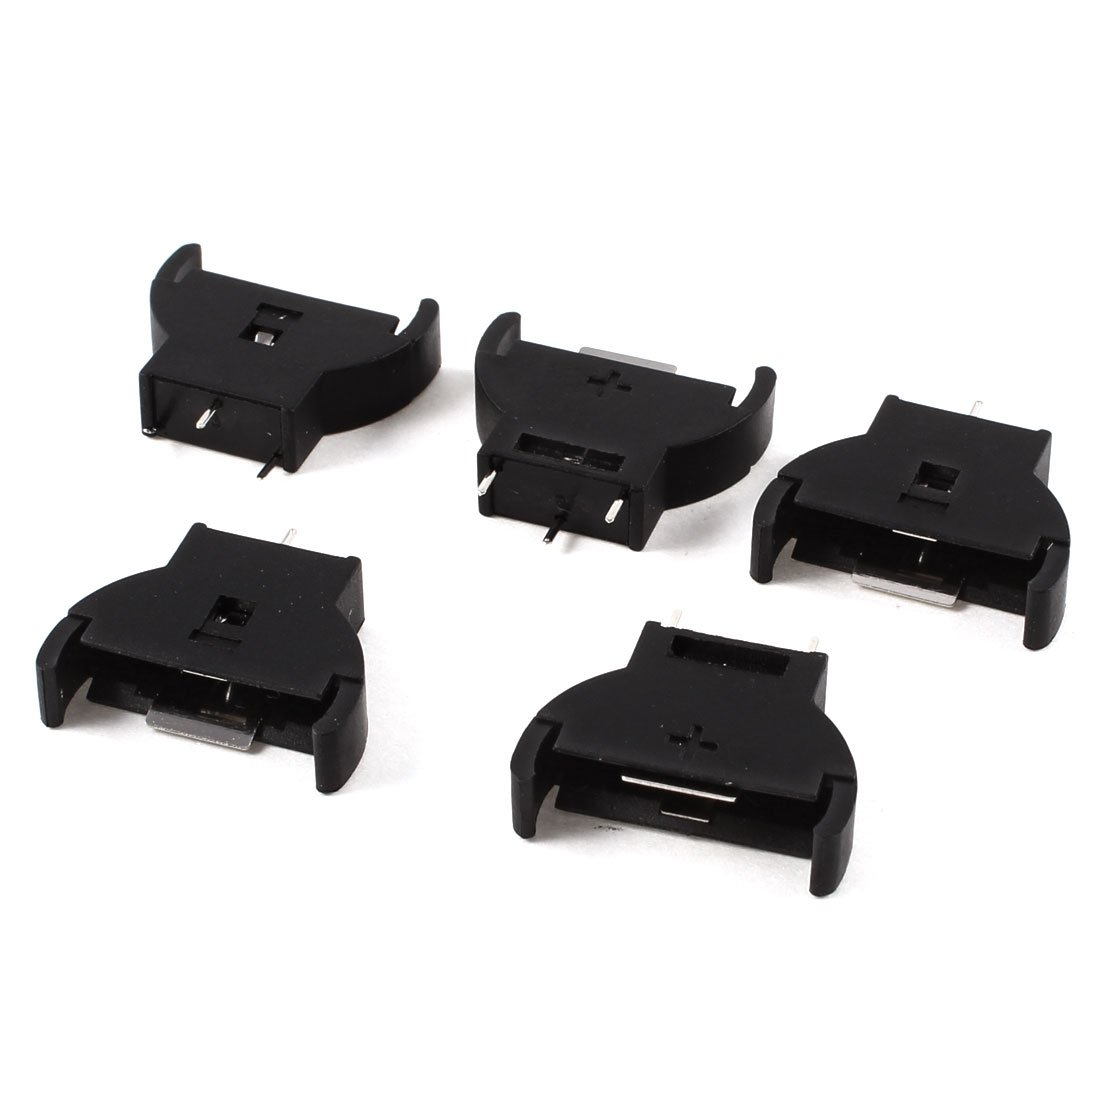 цена на Brand New 5 Pcs Black Plastic CR2032 2032 3V Cell Coin Battery Socket Holder Case Battery Boxes